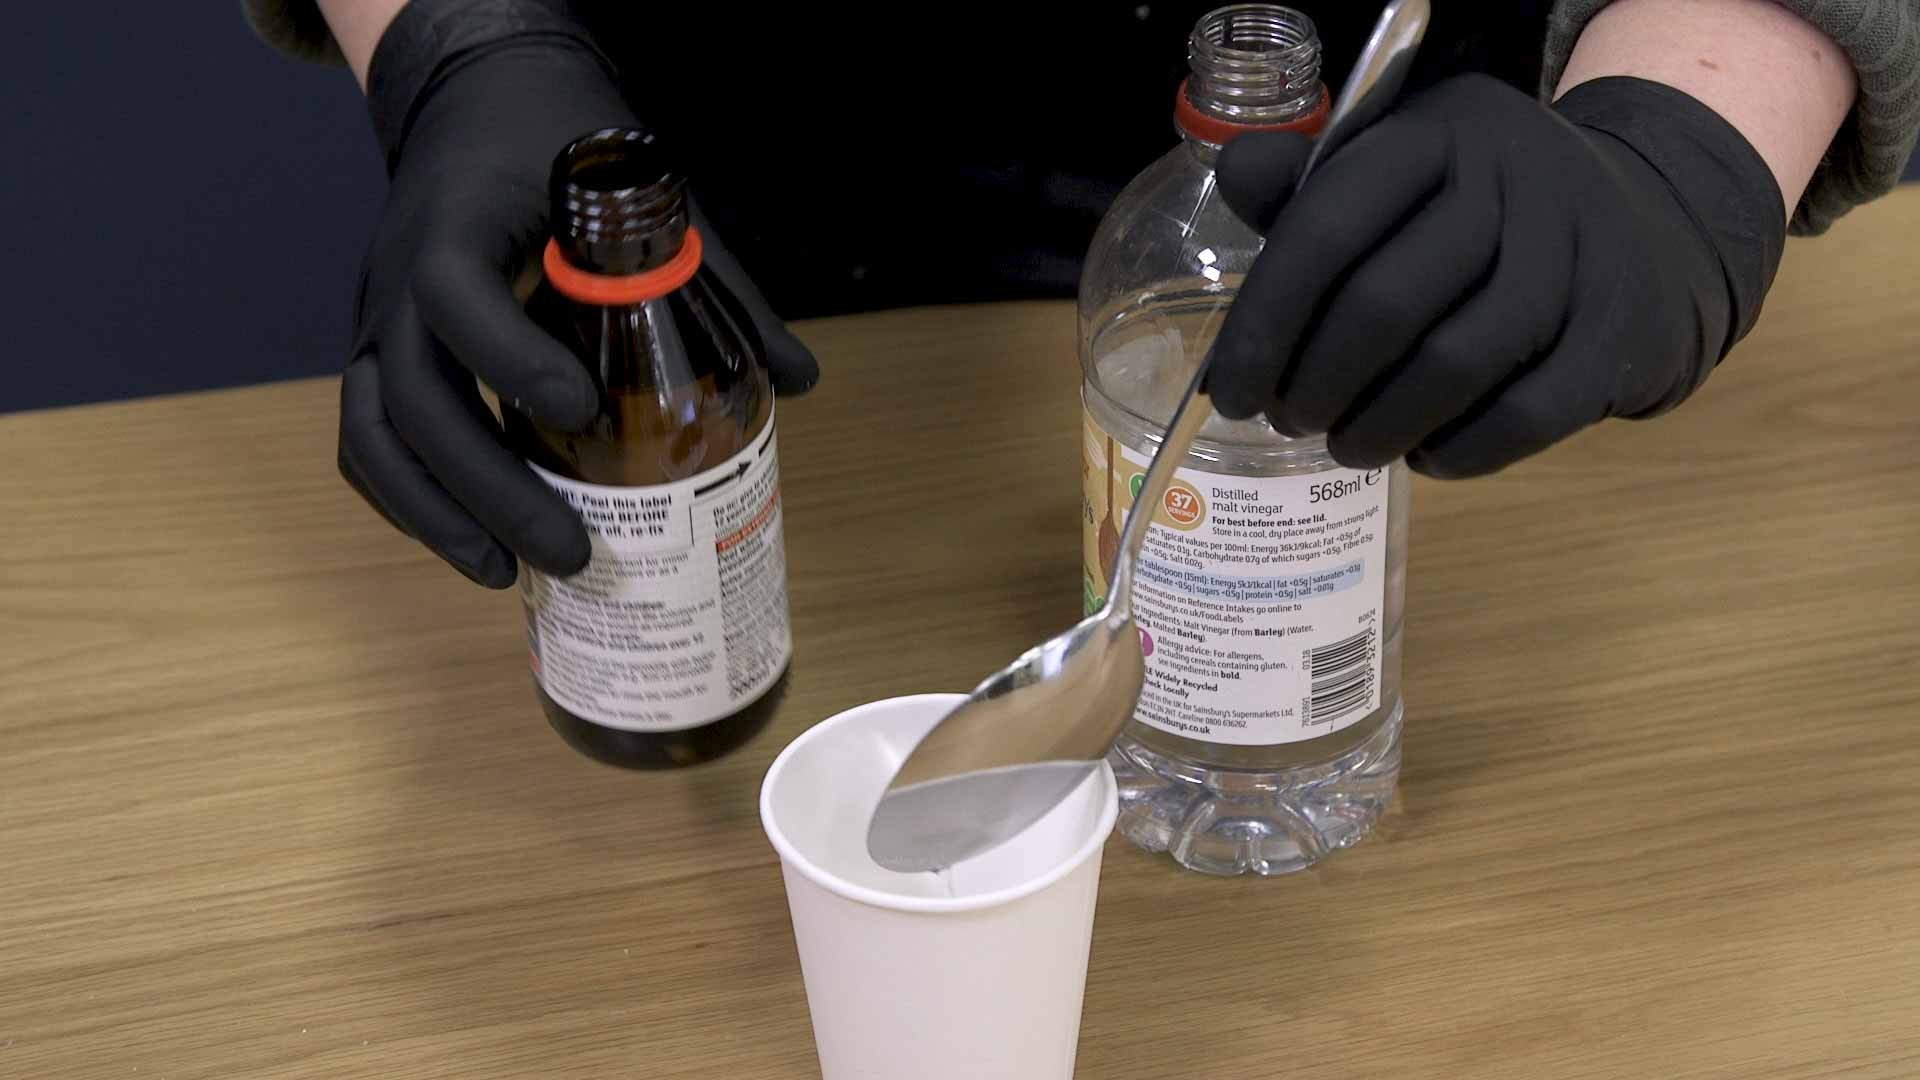 Mixing vinegar and hydrogen peroxide